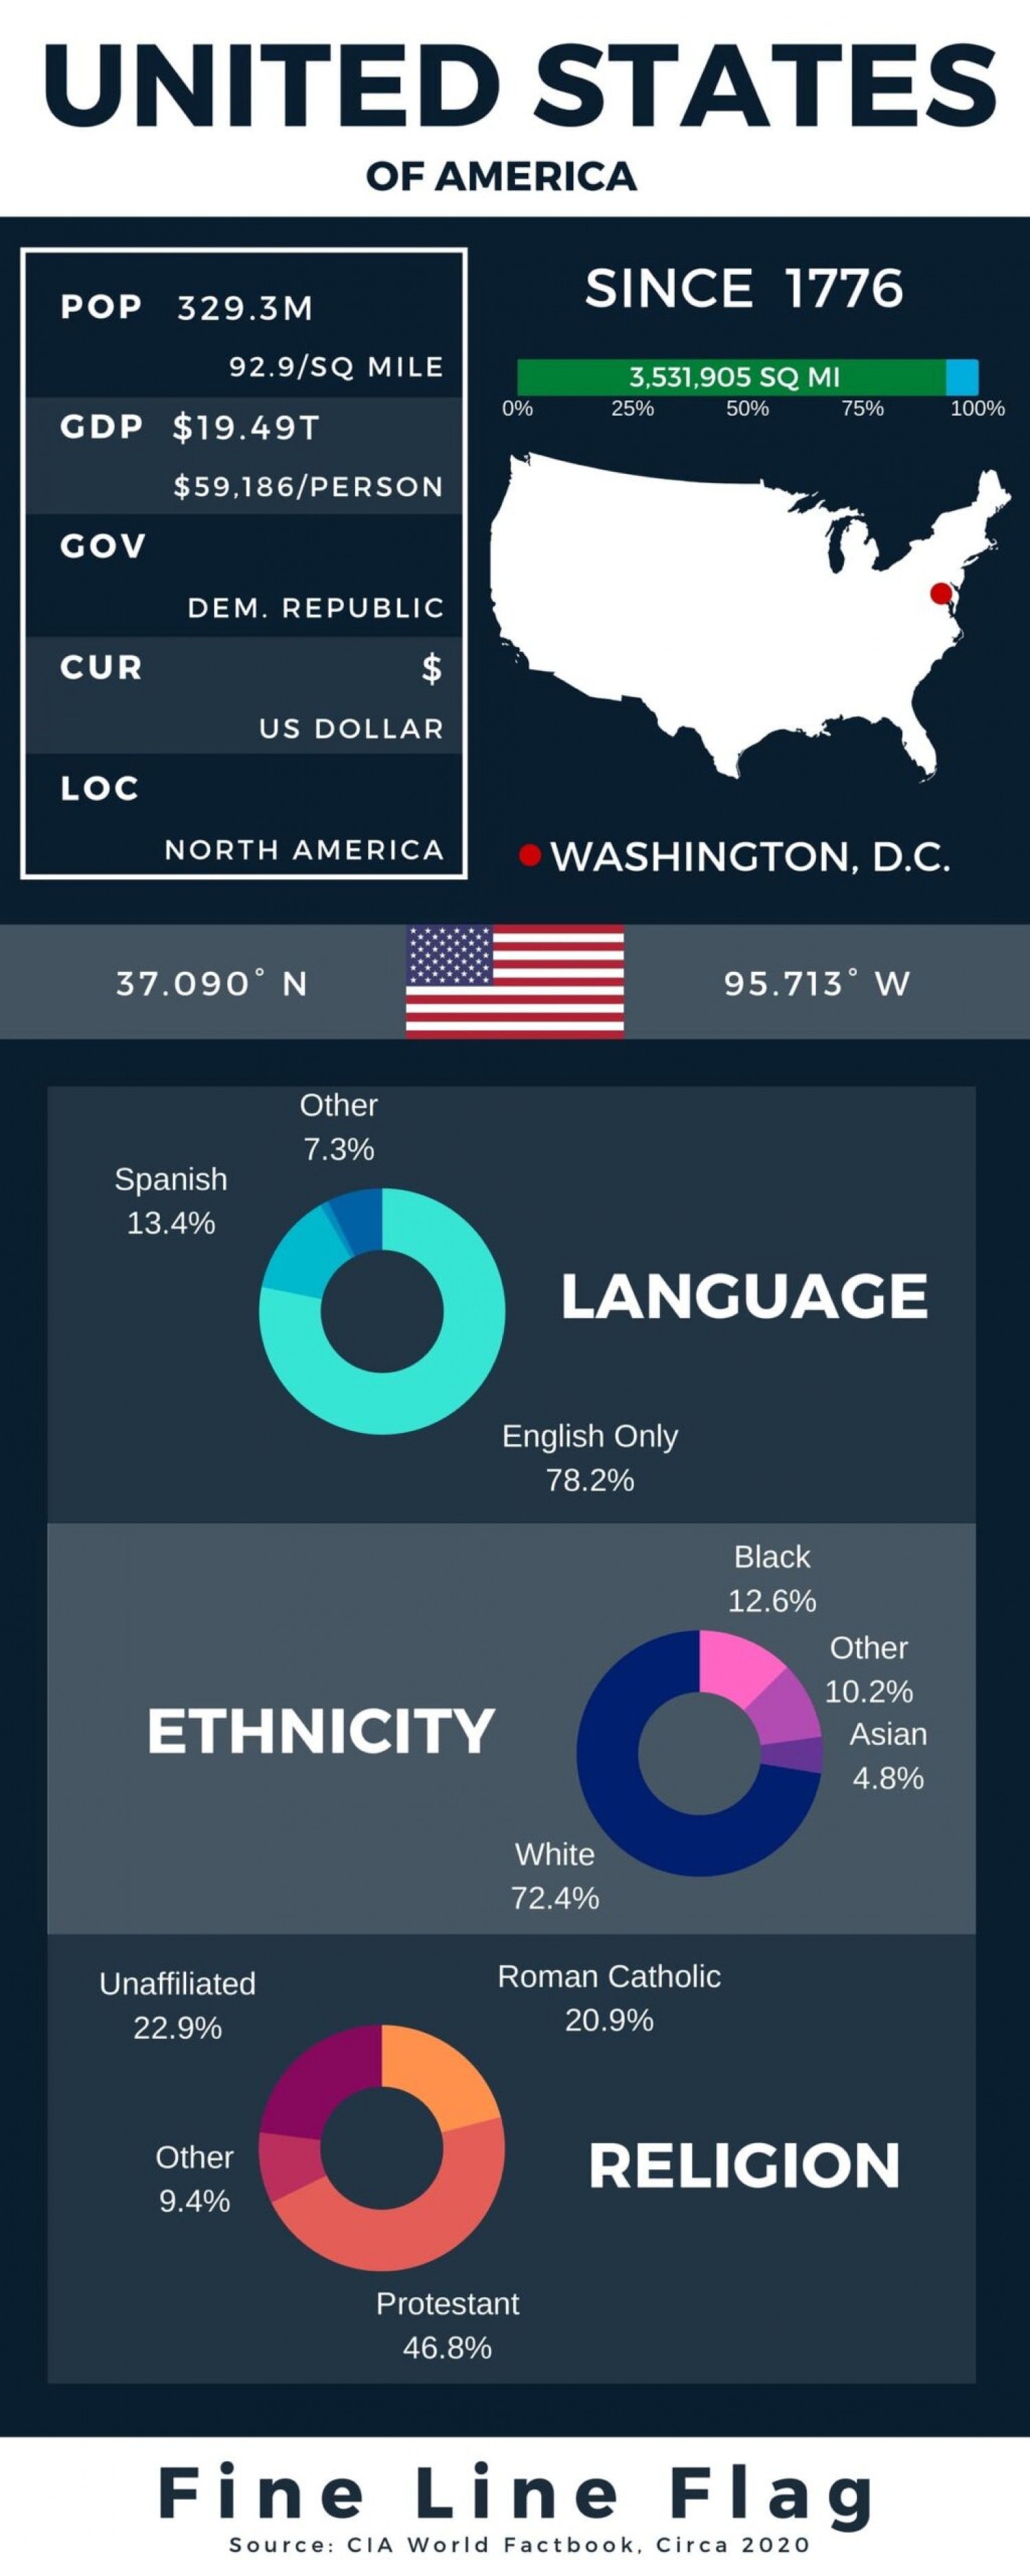 United States of America Infographic Infographic